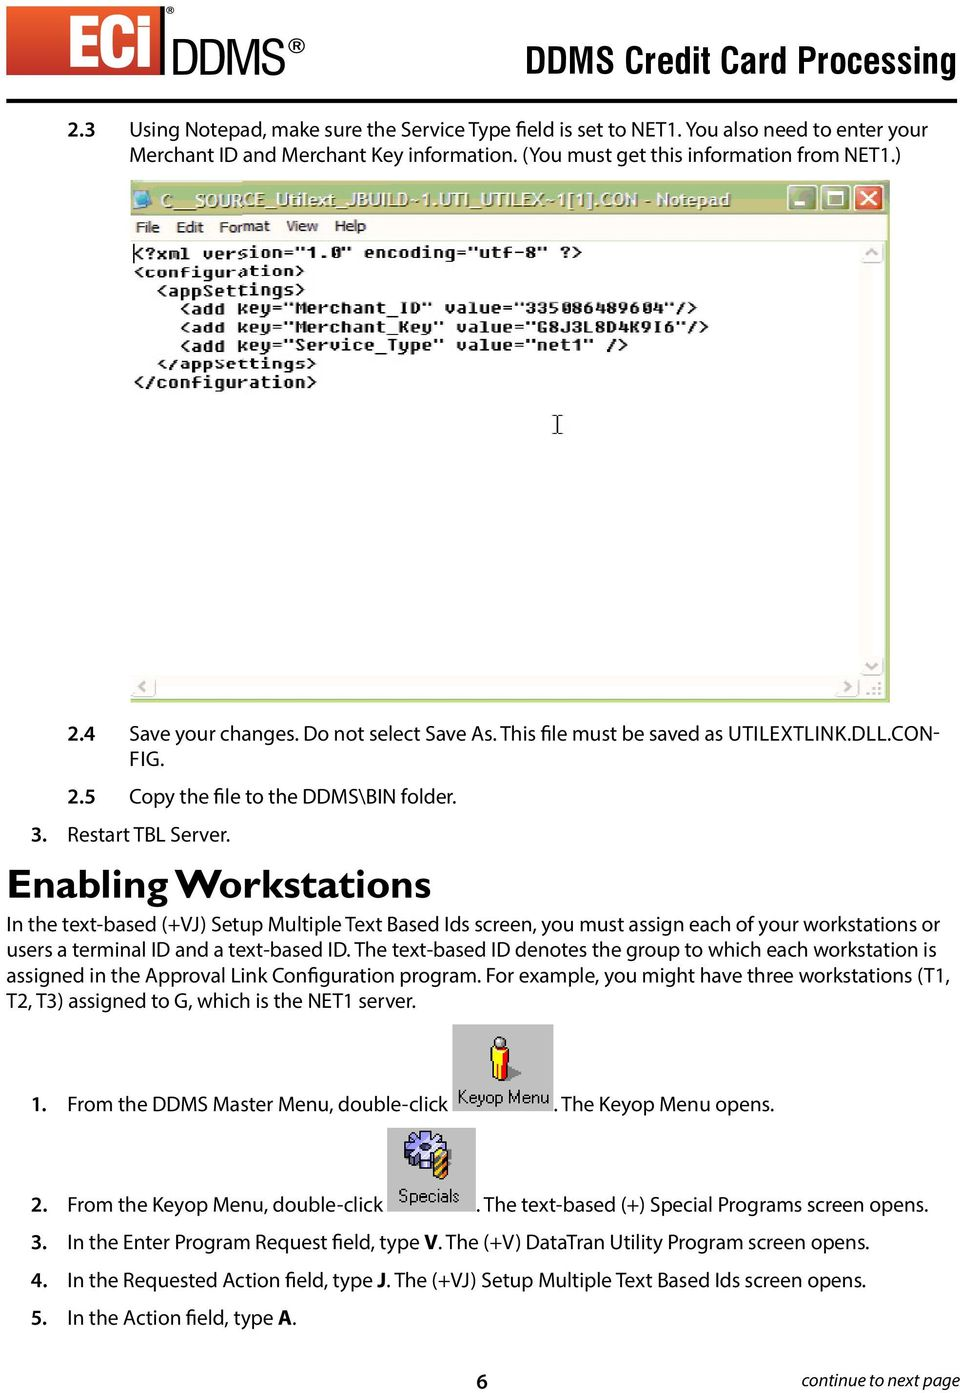 Enabling Workstations In the text-based (+VJ) Setup Multiple Text Based Ids screen, you must assign each of your workstations or users a terminal ID and a text-based ID.